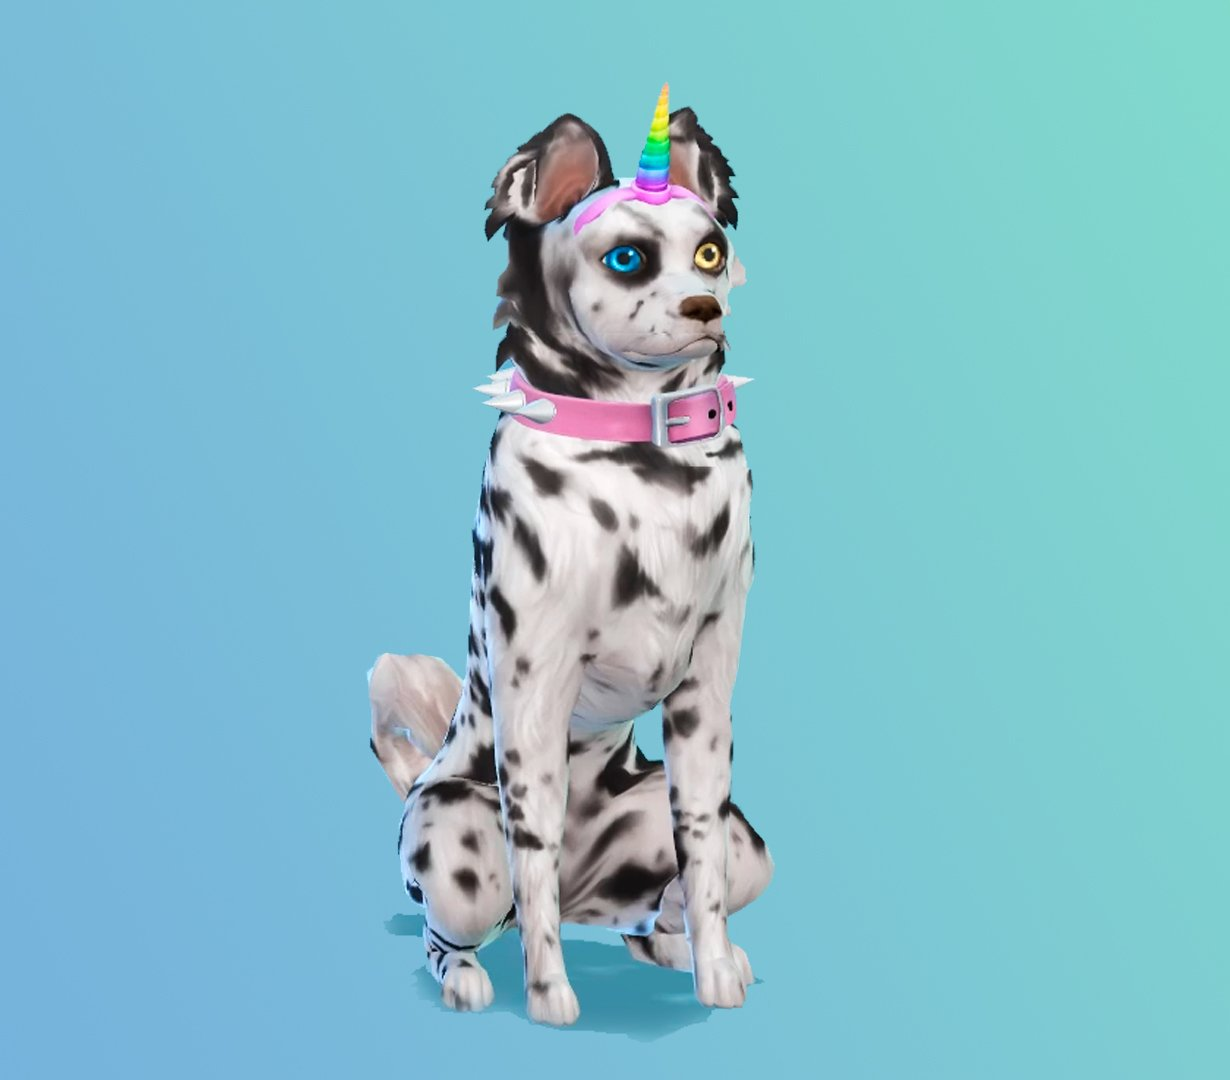 sims 4 dogs and cats